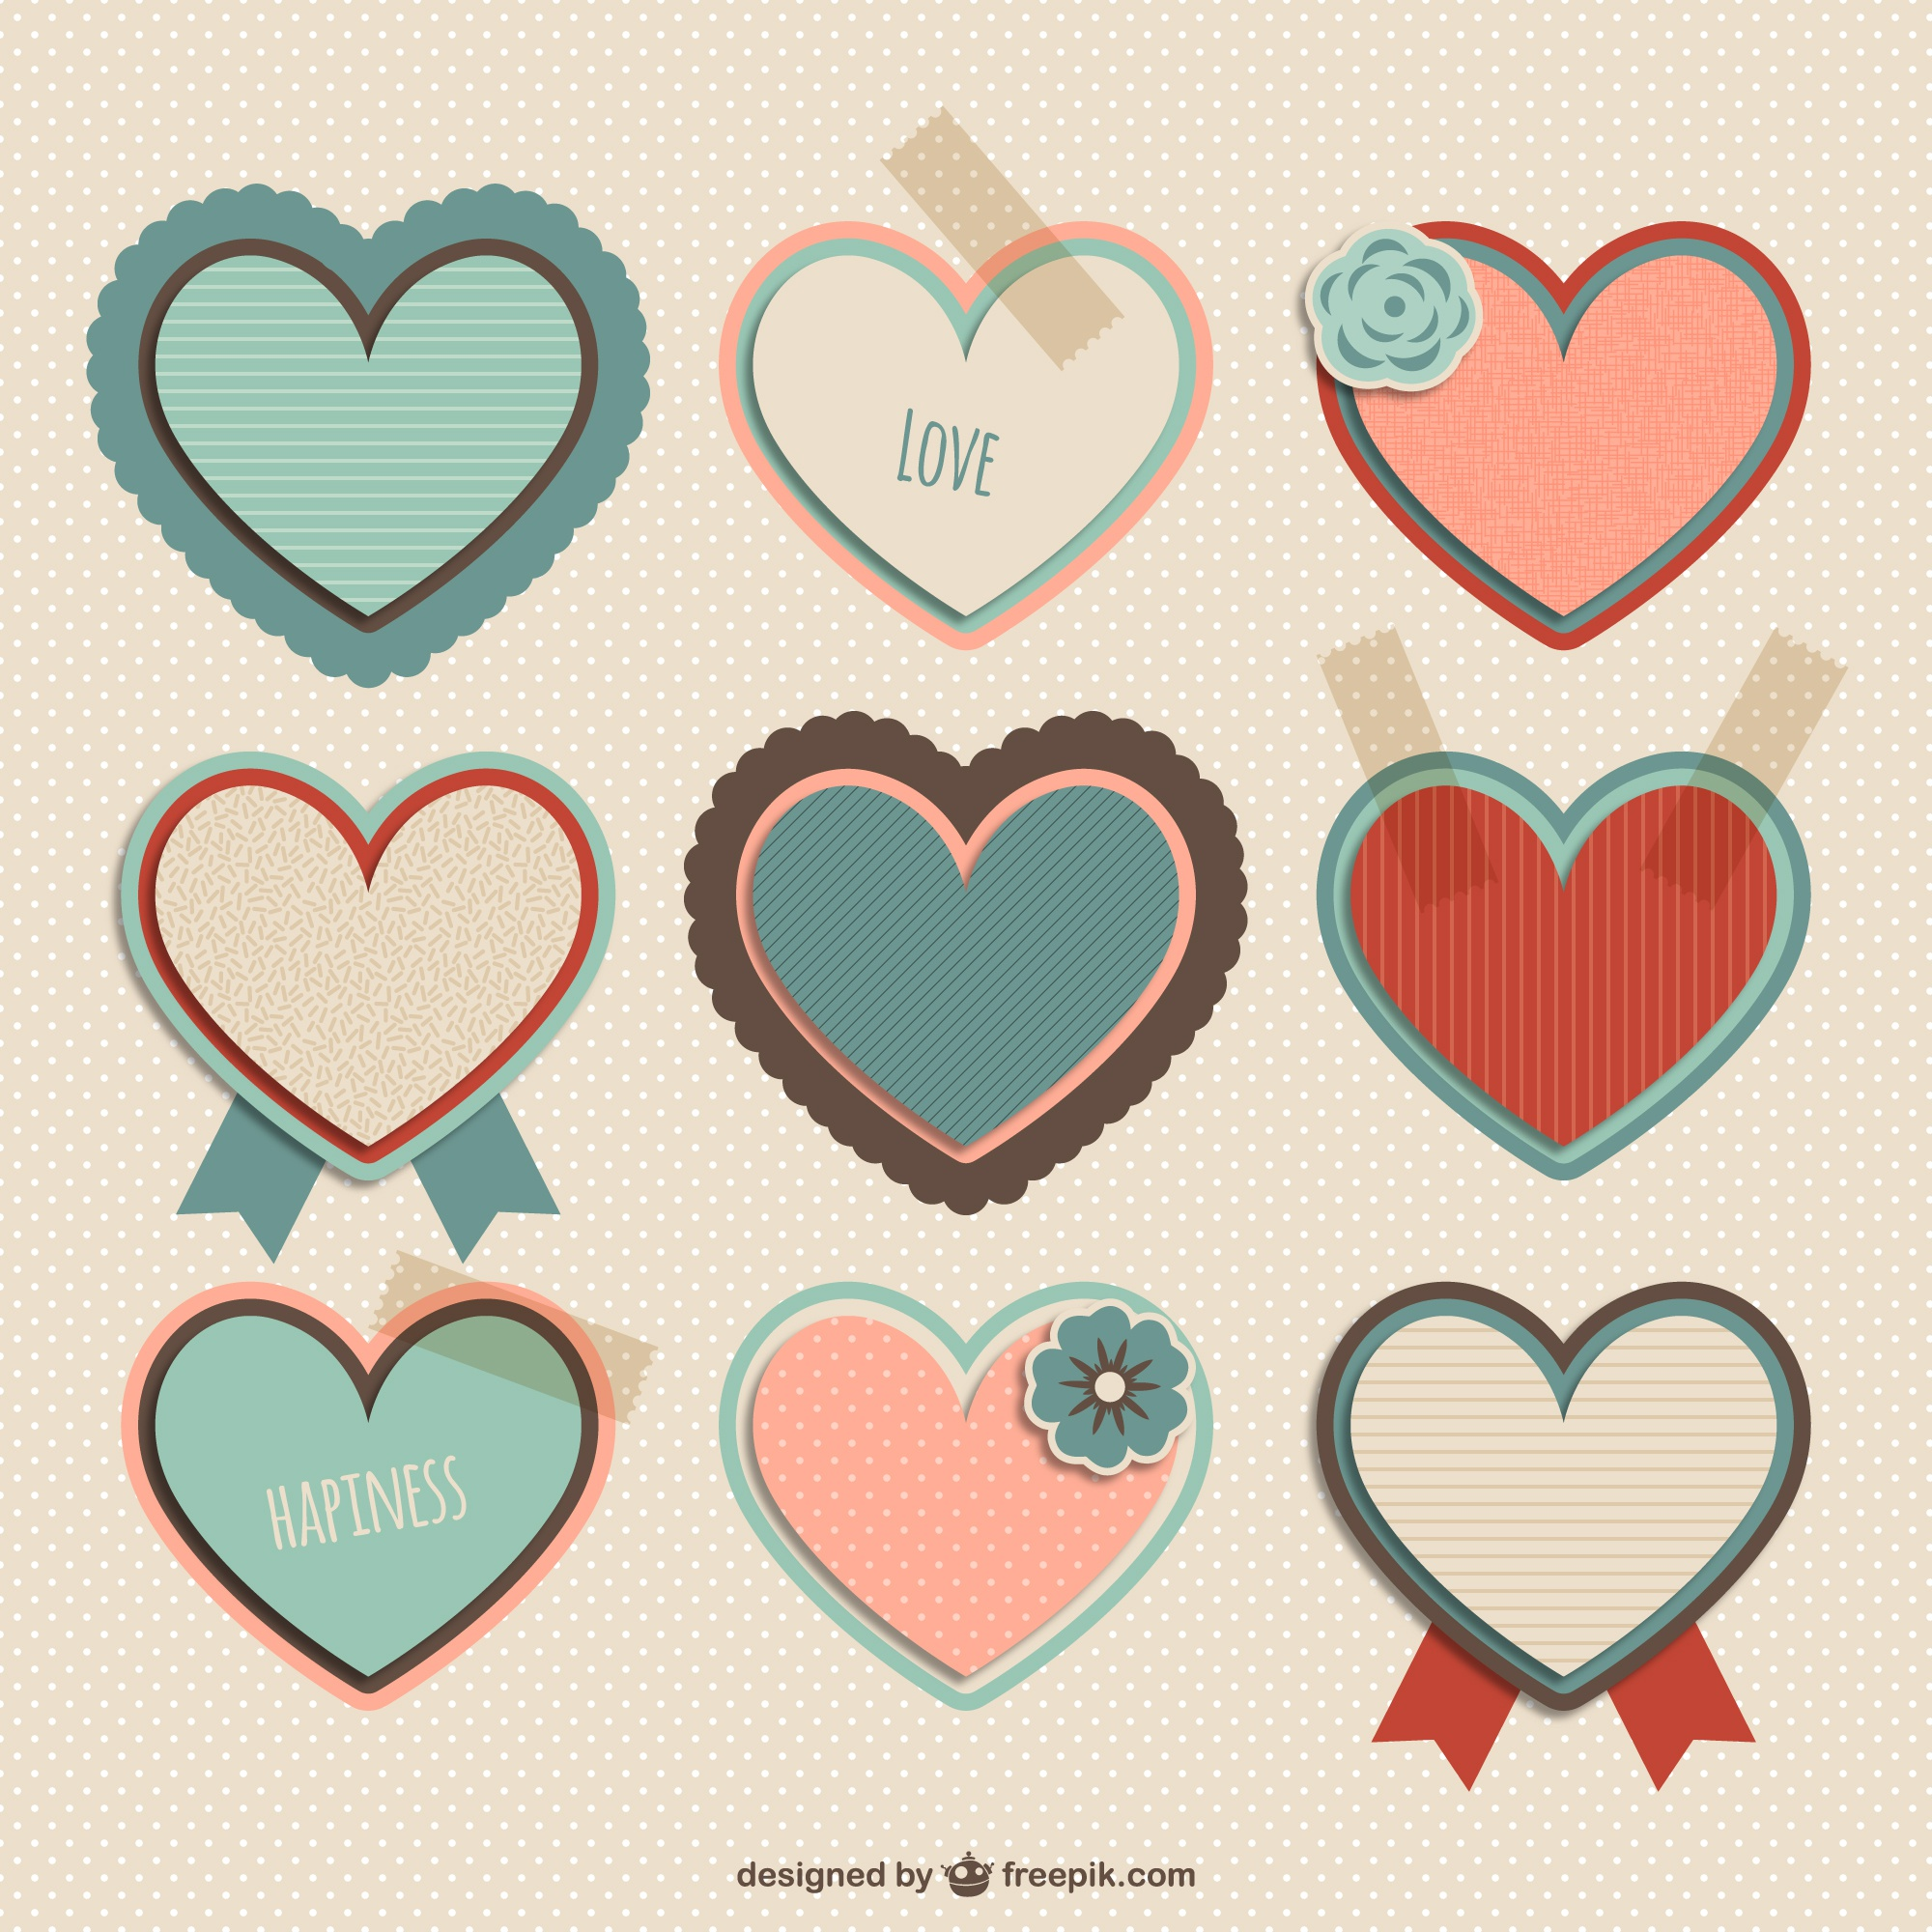 Stationery hearts collection